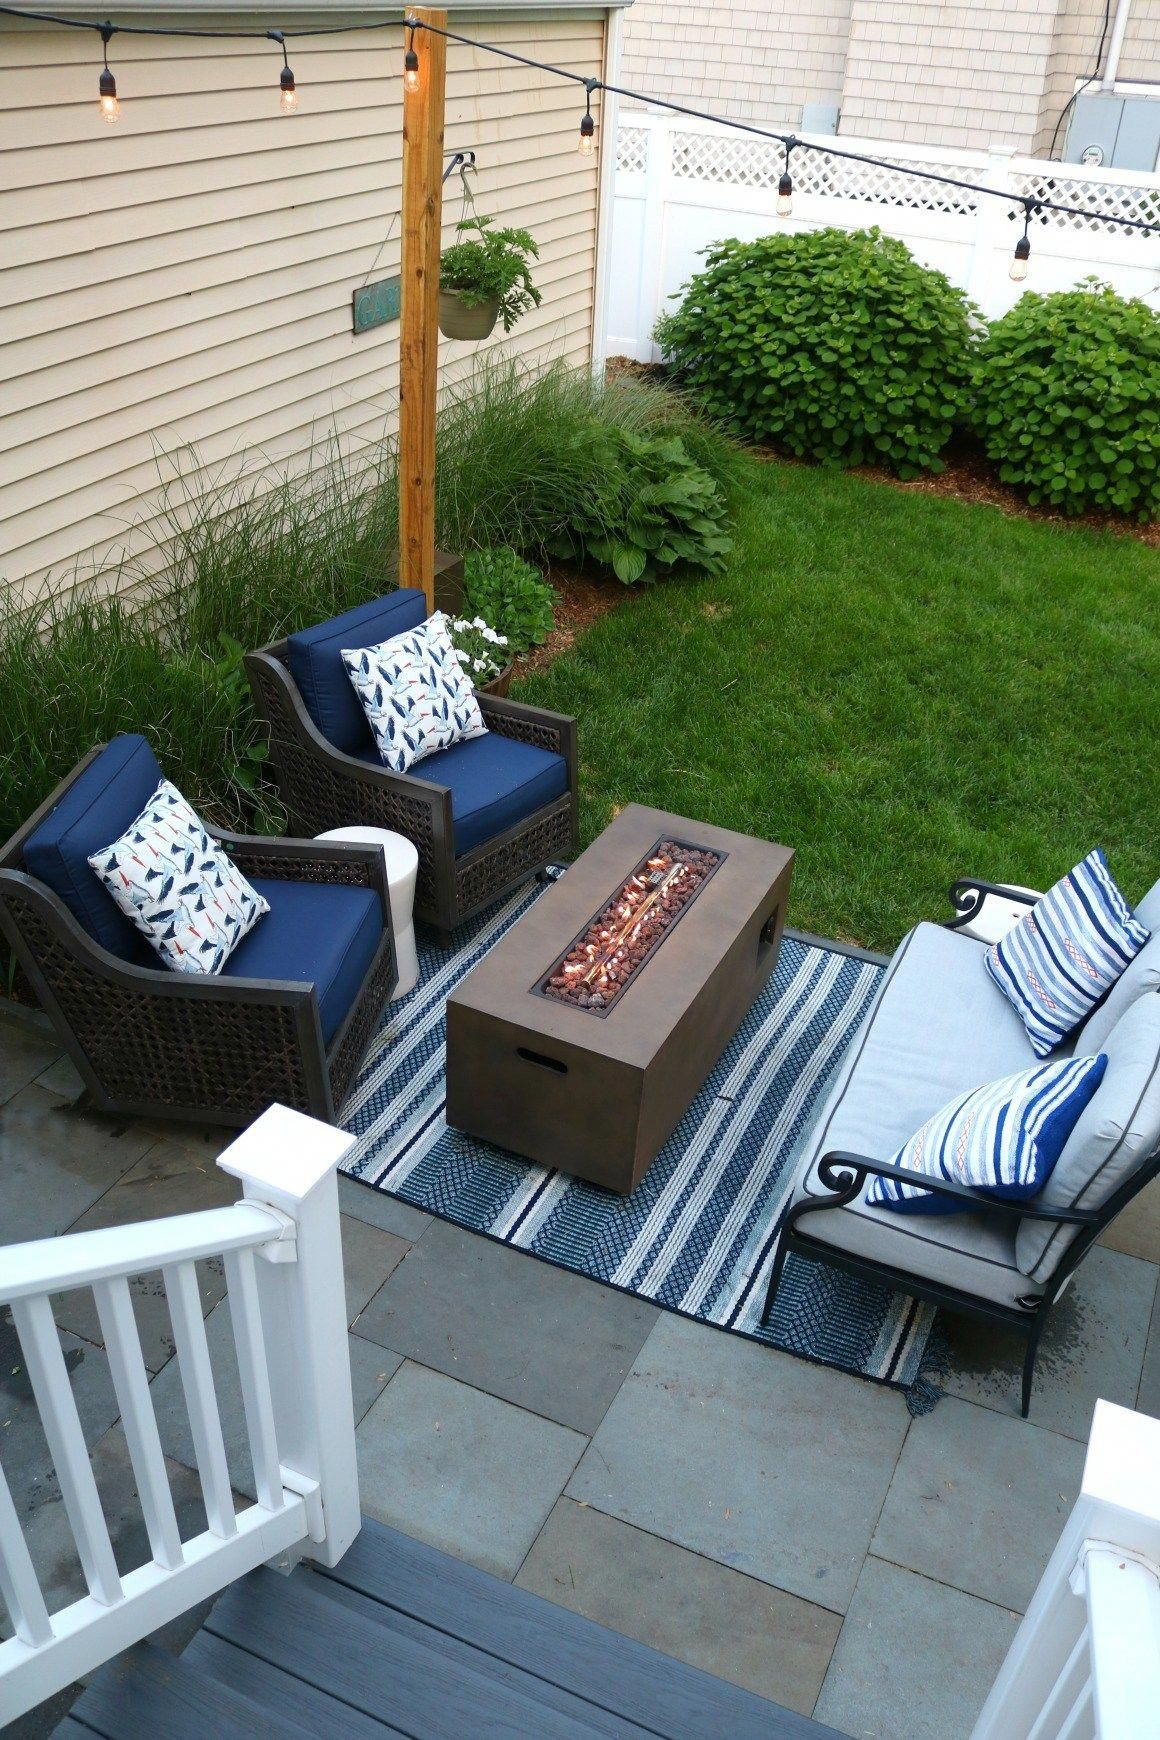 Download Wallpaper Small Space Outdoor Furniture Ideas